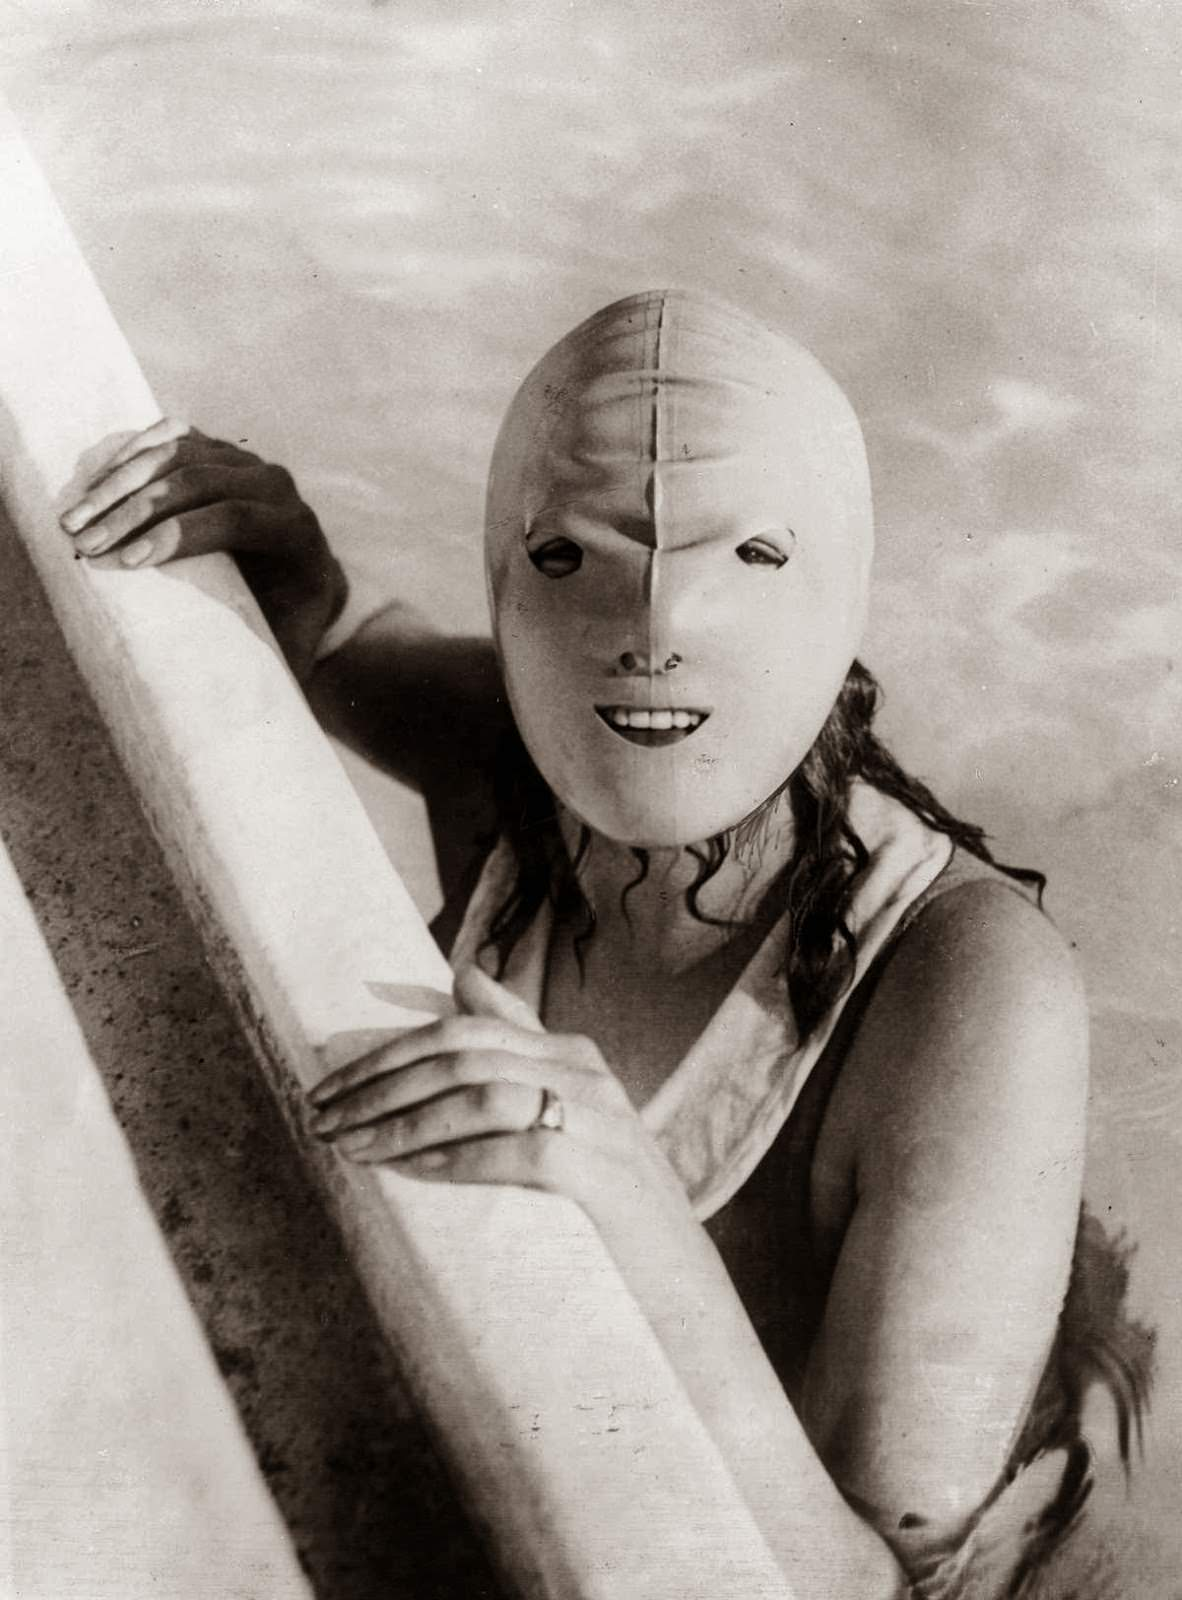 Full face swimming mask, 1928